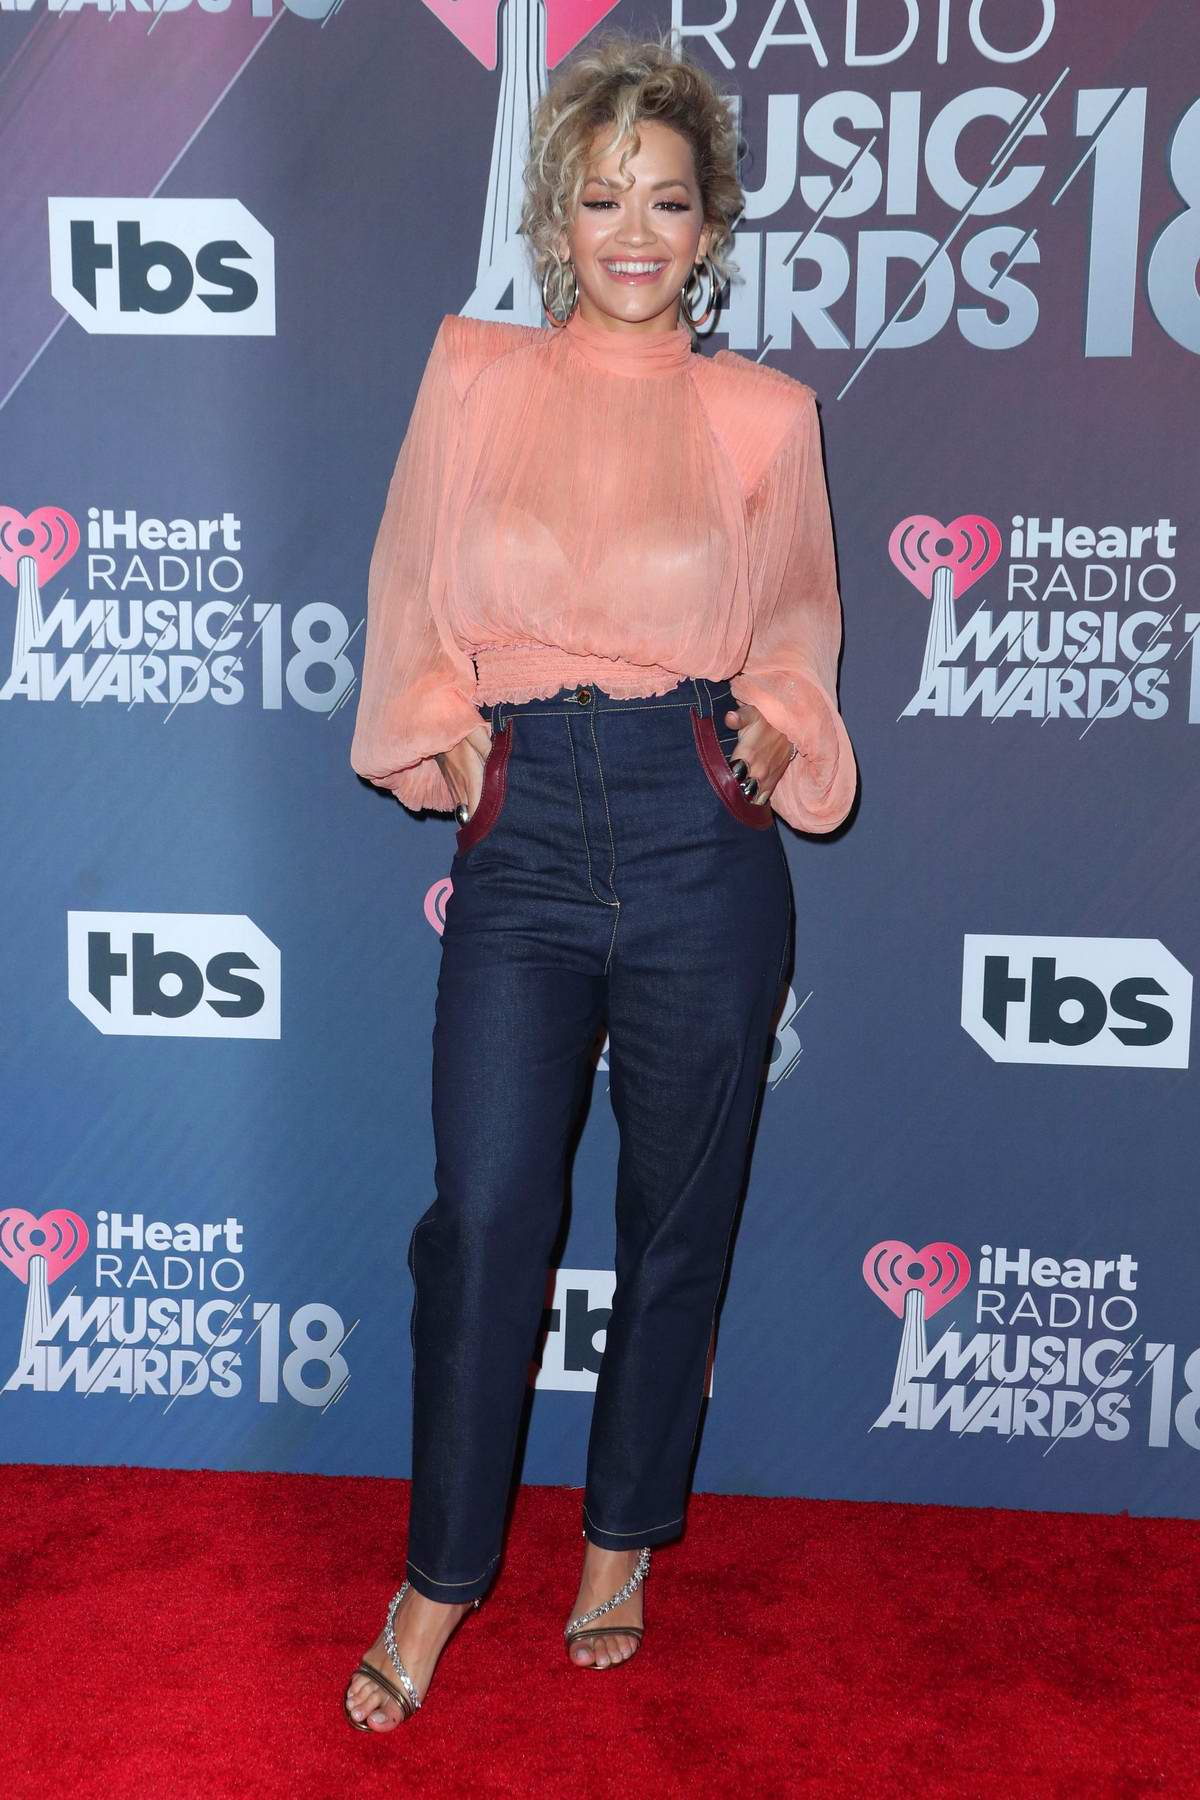 Rita Ora attends the 2018 iHeartRadio Music Awards at The Forum in Inglewood, California